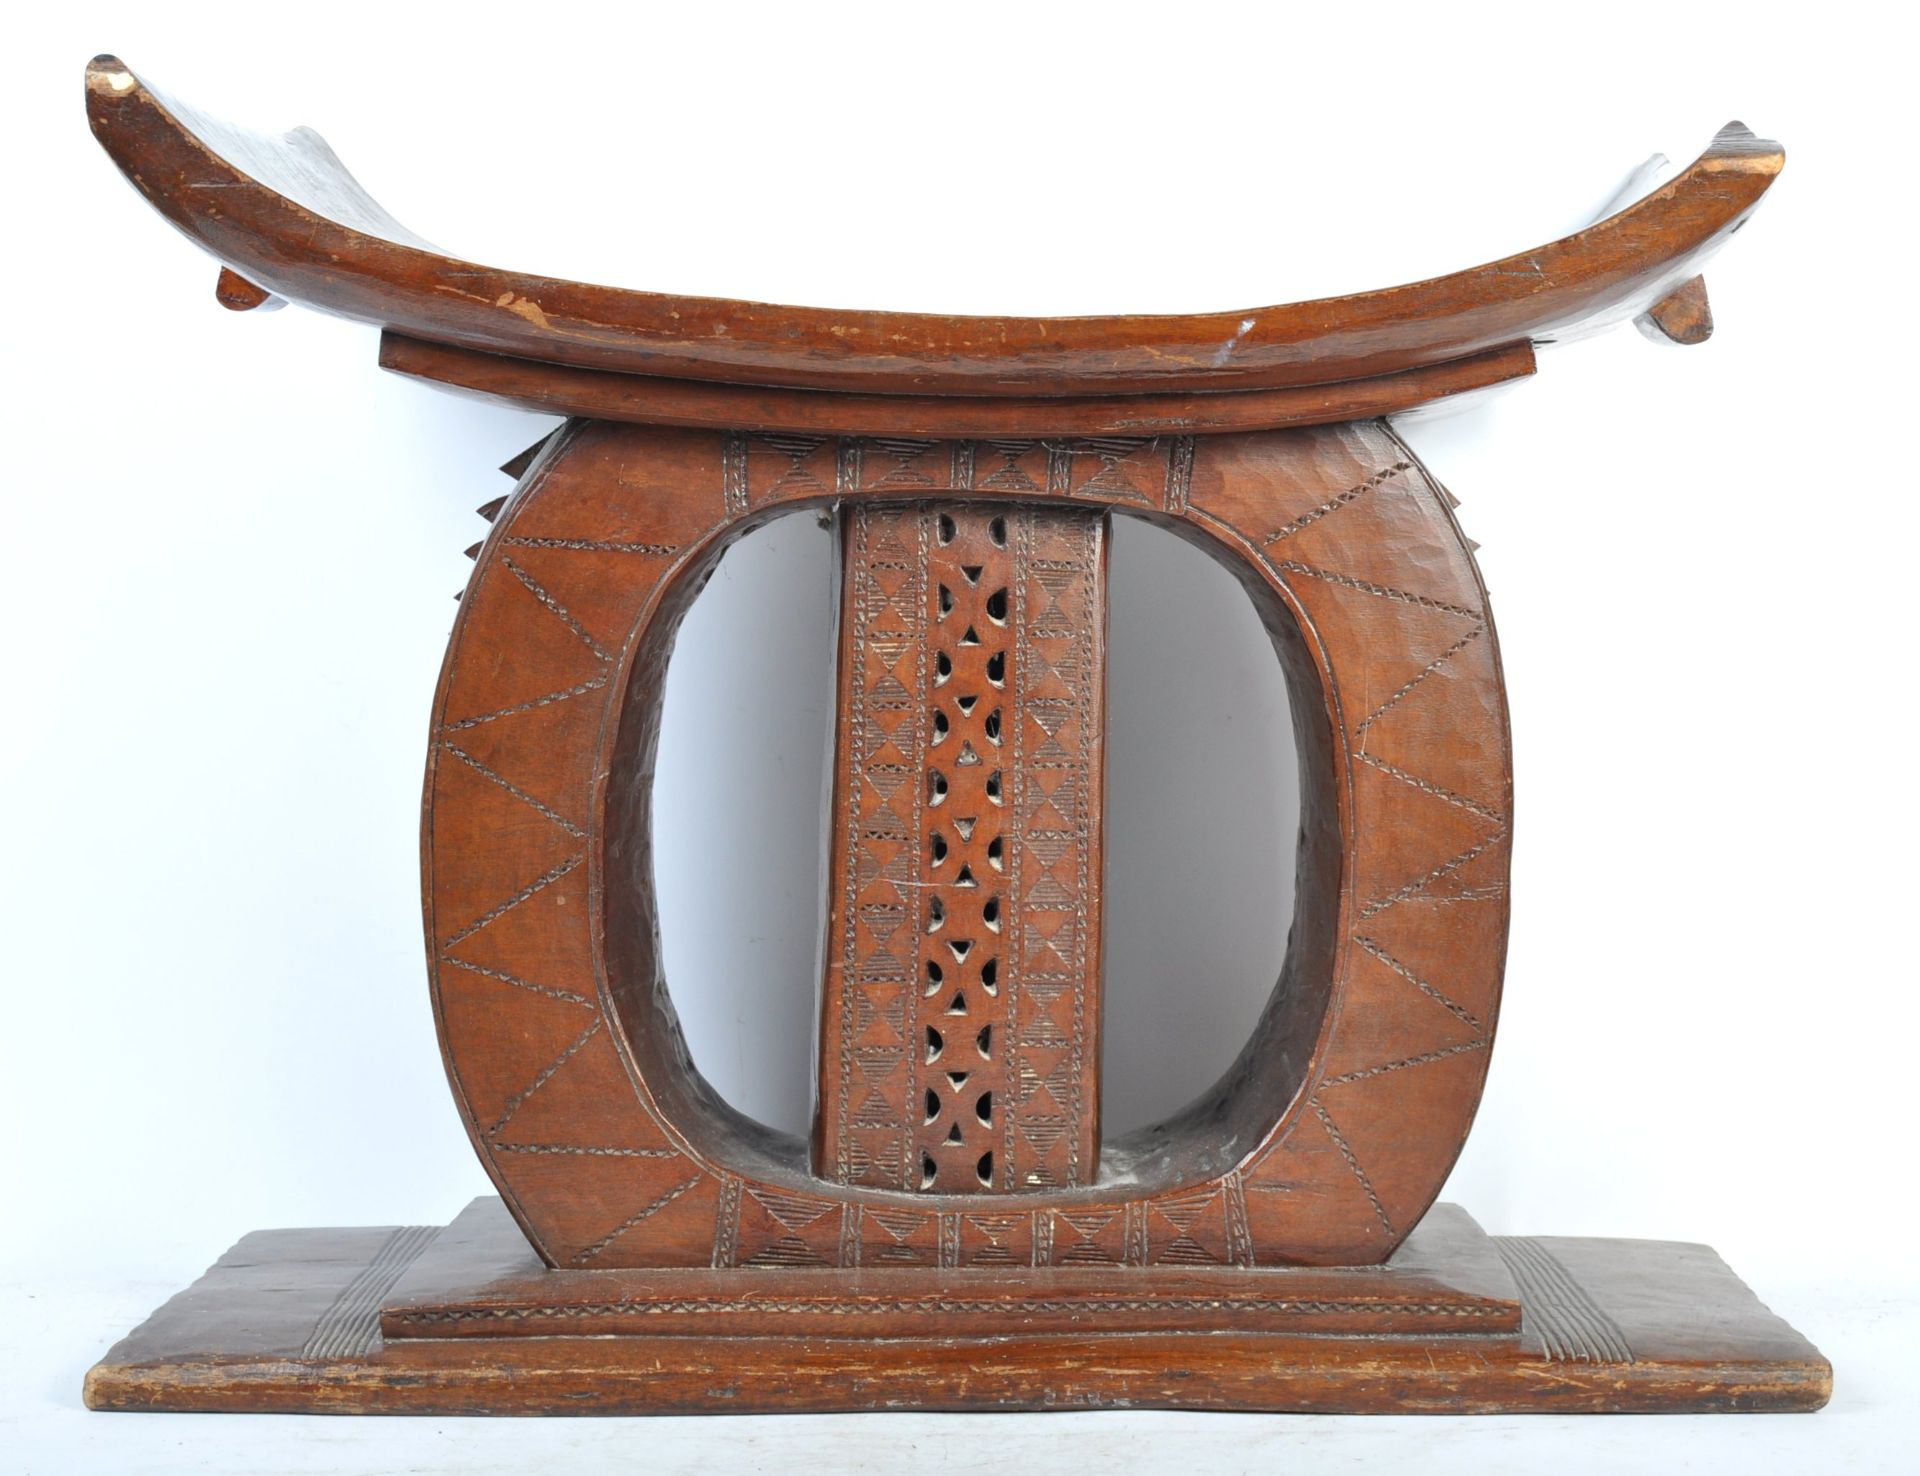 Los 590 - TRIBAL ANTIQUITIES - EARLY 20TH CENTURY ASHANTI TRIBAL STOOL